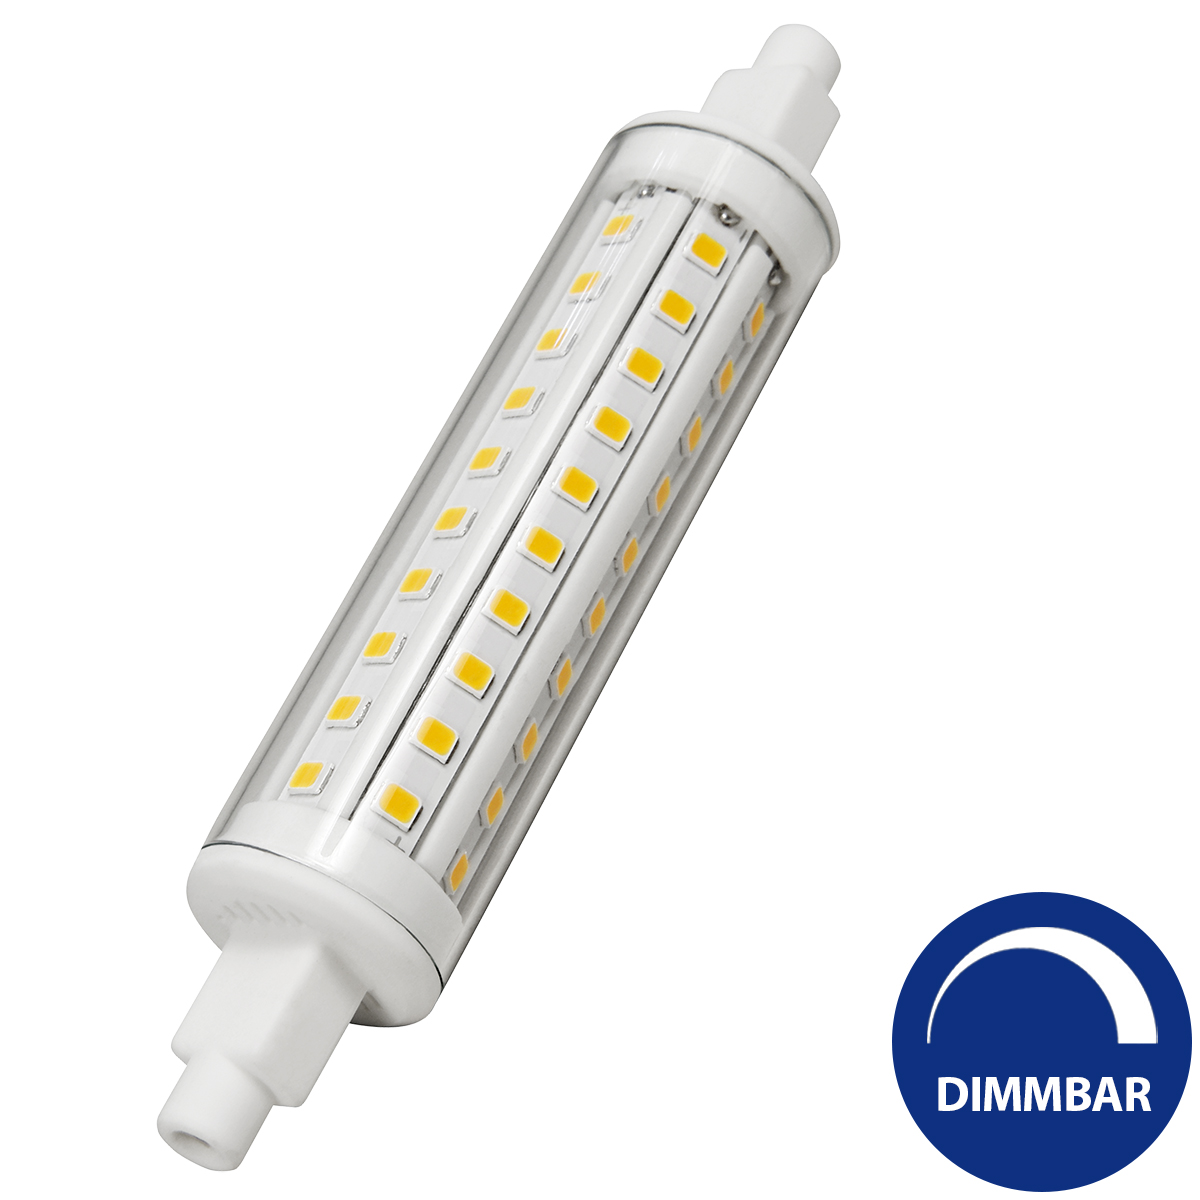 Led Gu4 Dimmbar Led Stablampe R7s 10w 1000lm Warmweiß Dimmbar